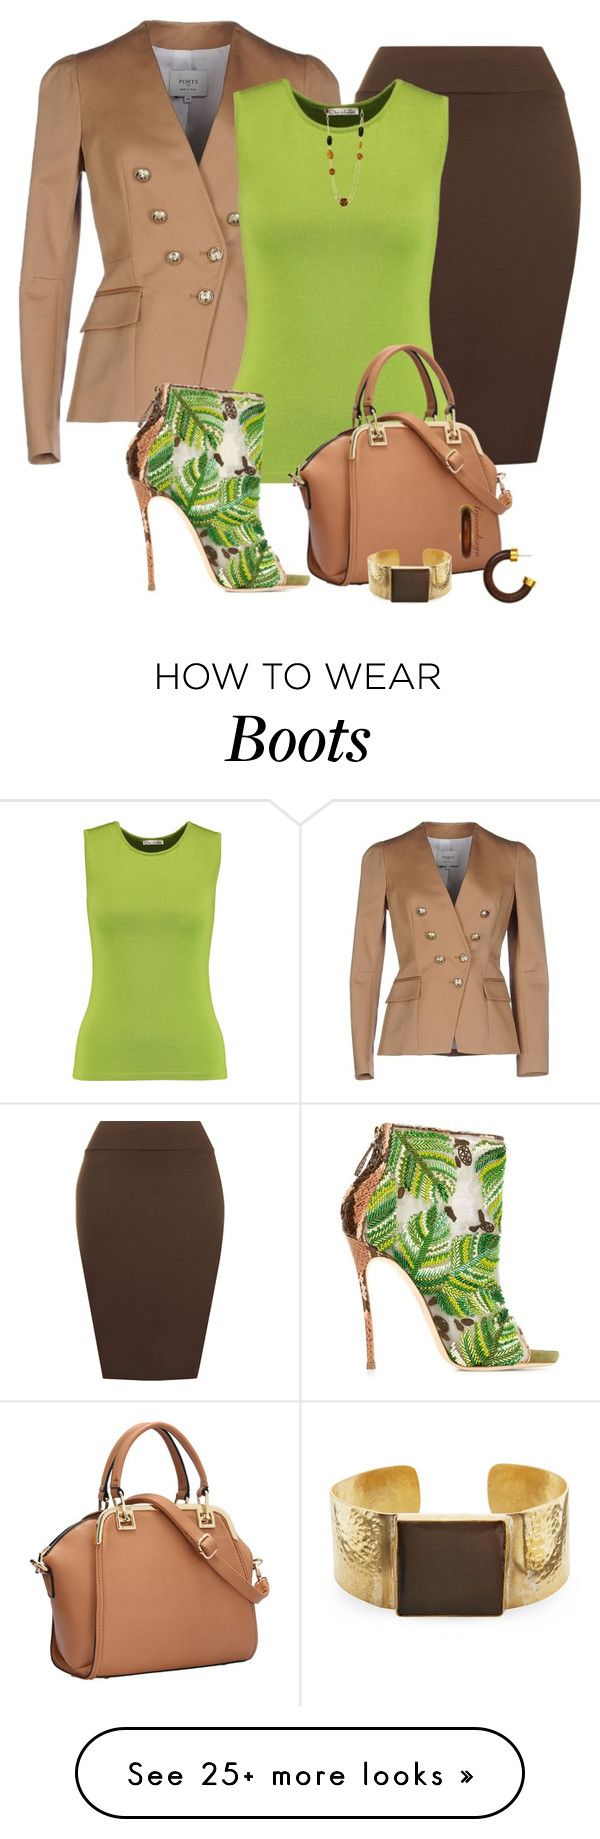 """""""Dsquared2 Embroidered Boots"""" by arjanadesign on Polyvore featuring Ports 1961, WearAll, Oscar de la Renta, Dsquared2, Kenneth Jay Lane, WorkWear, oscardelarenta and dsquared2"""